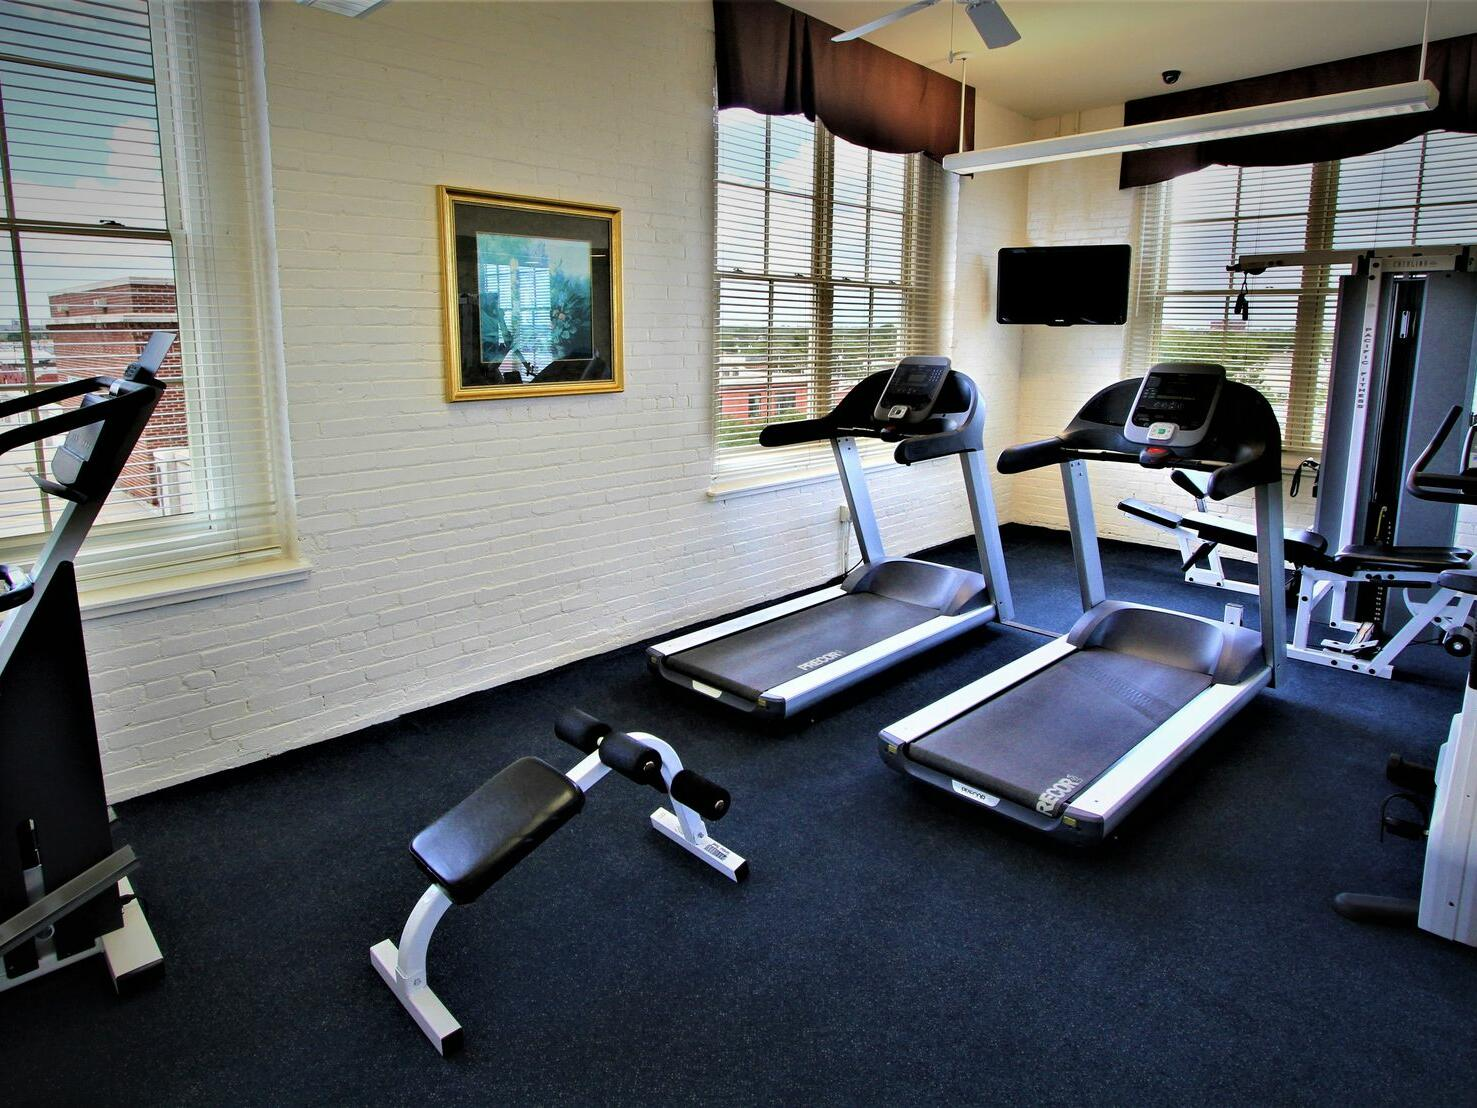 The fully equipped fitness center at Hotel at Old Town Wichita